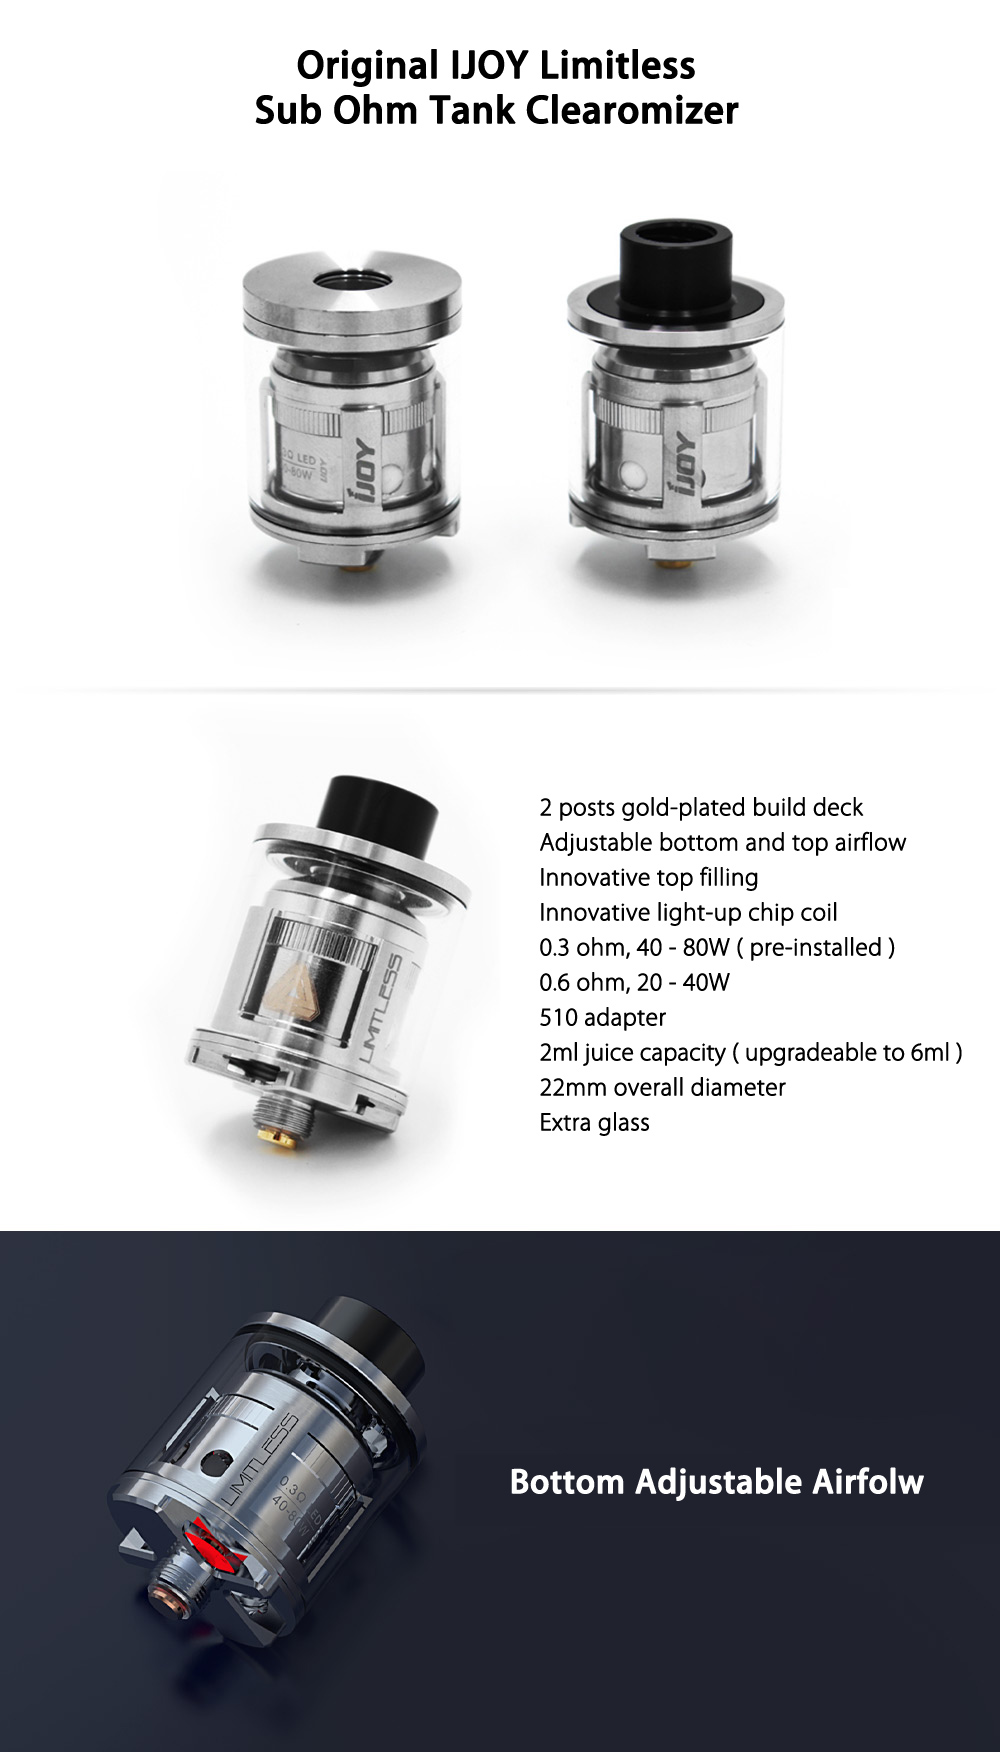 Original IJOY Limitless Sub Ohm Tank with 22mm / 2ml / 0.3 ohm / 0.6 ohm / Top Filling System / Light-up Chip Coil Clearomizer  for E Cigarette